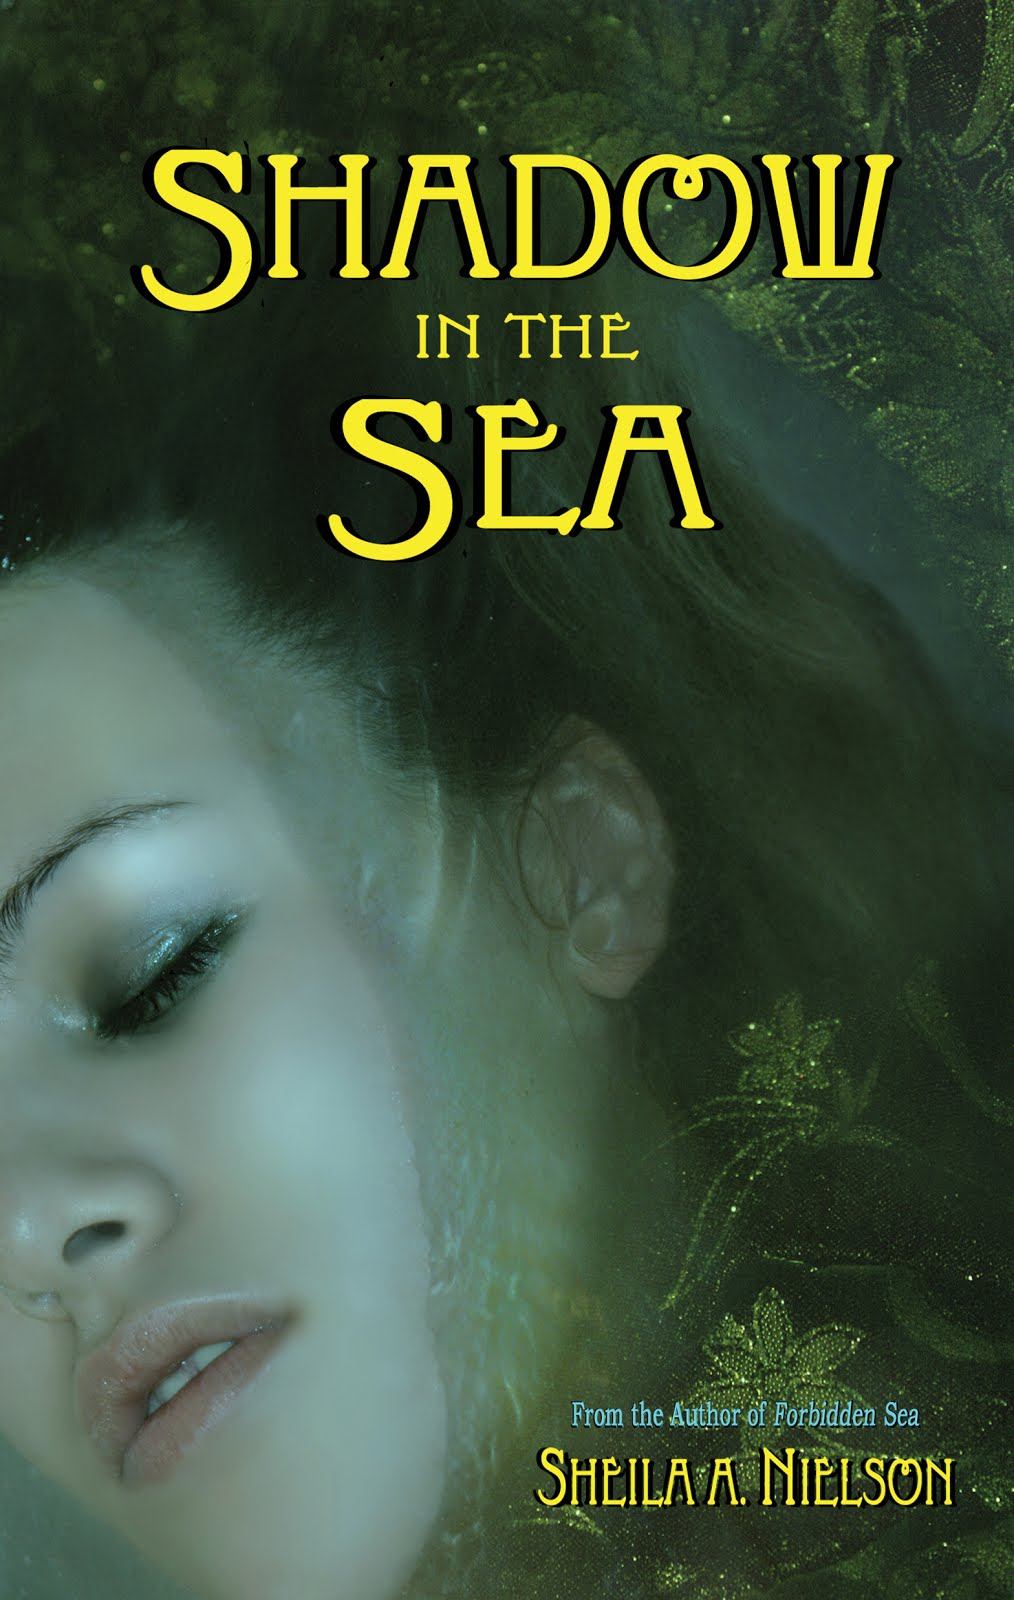 forbidden sea mermaid books for all ages